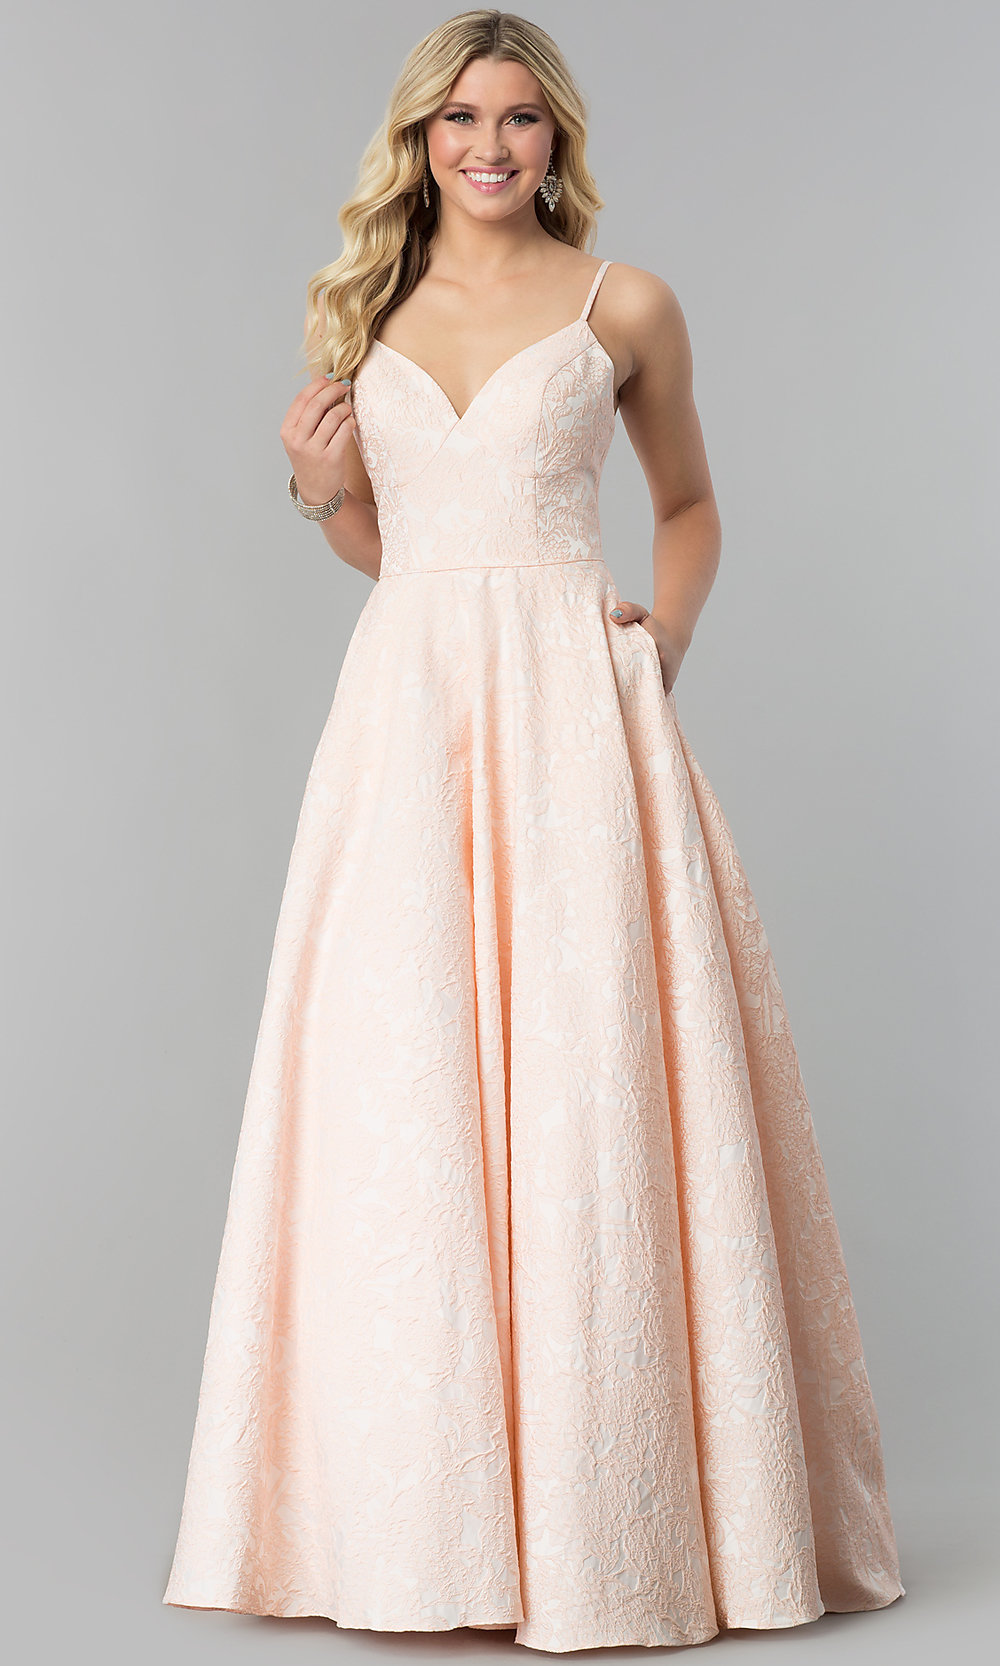 299ed559b31 The Best Prom Dress For Your Body Type